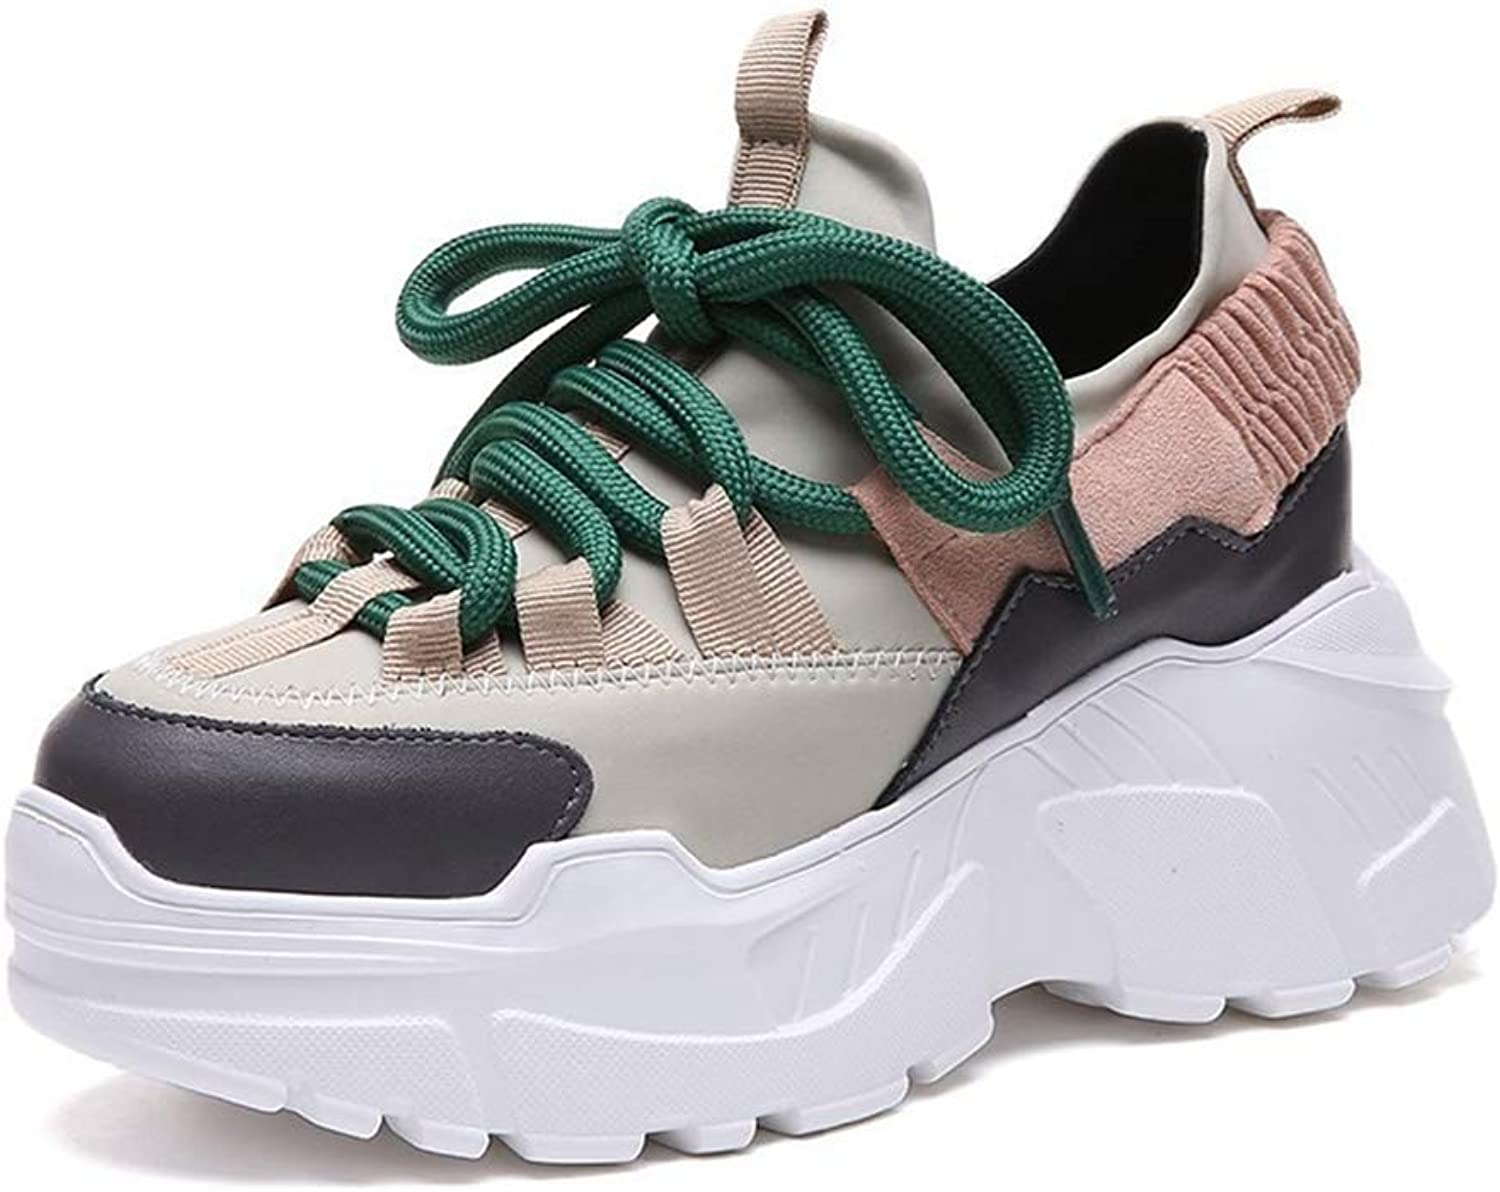 Women Platform Wedge Sneakers Breathable High Heel Casual shoes Height Increasing Outdoor shoes